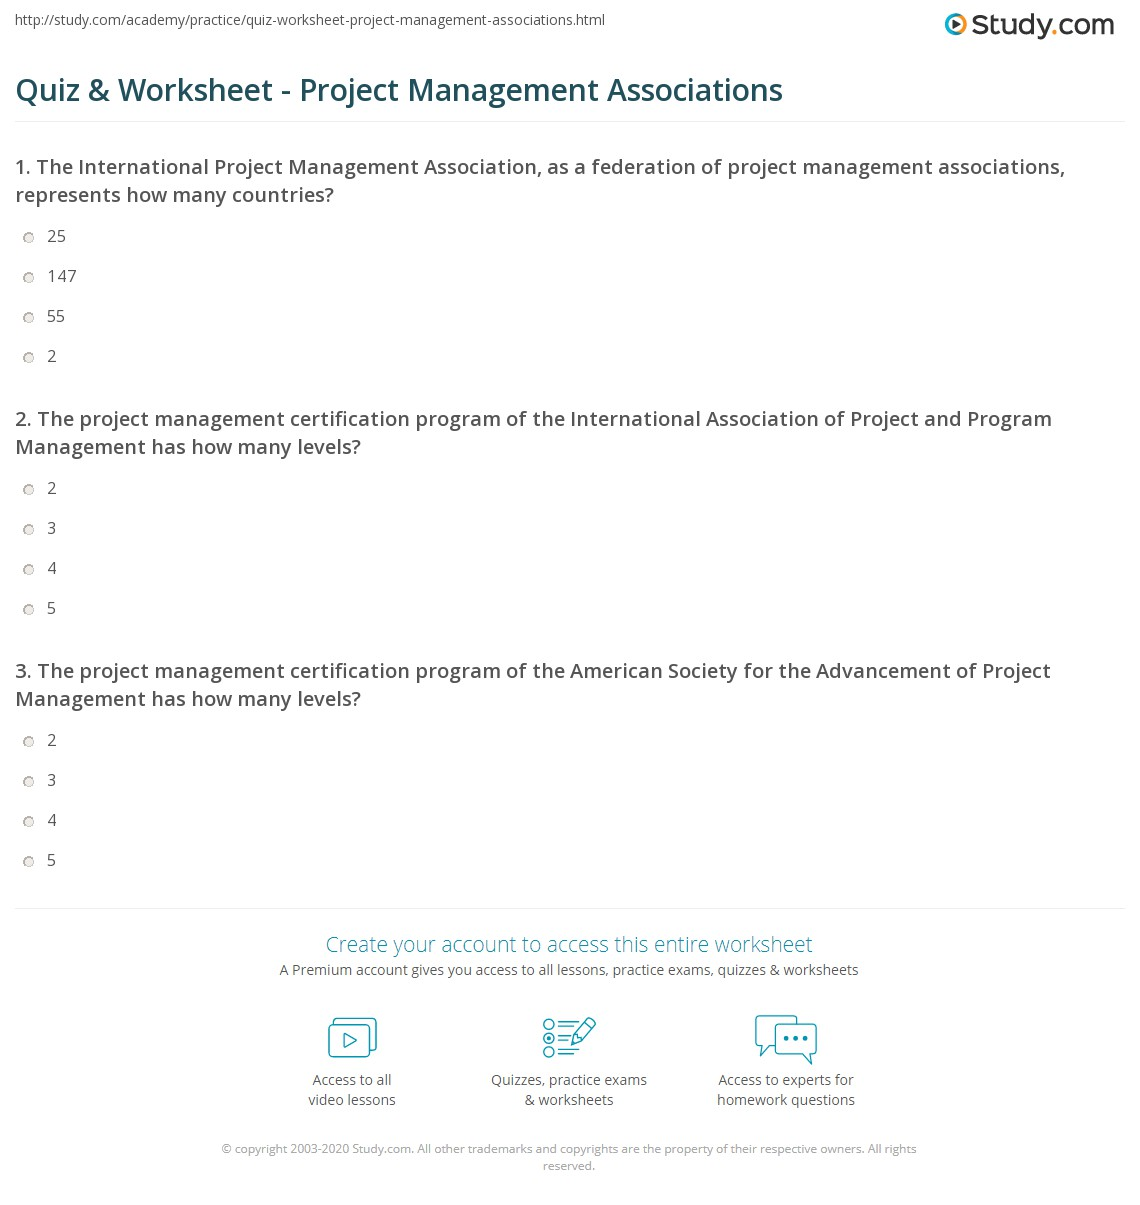 Quiz worksheet project management associations study the project management certification program of the international association of project and program management has how many levels xflitez Image collections